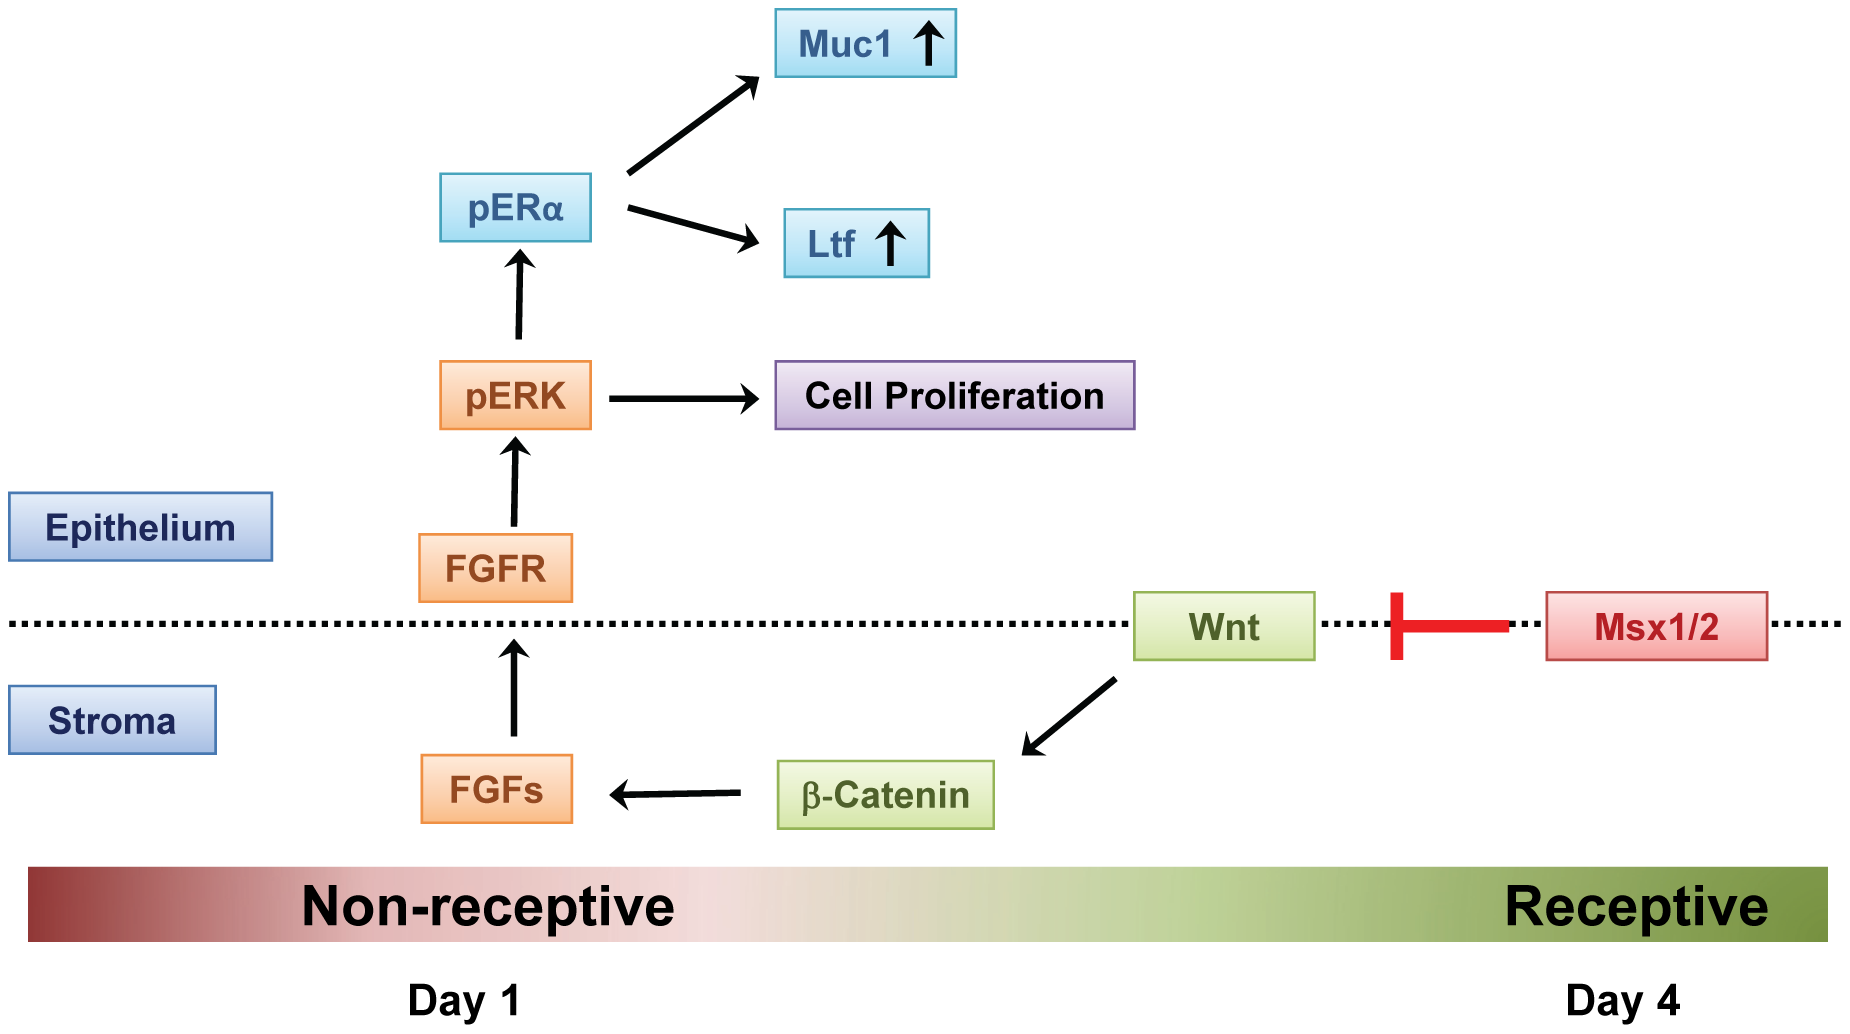 Mechanism of Msx1 and Msx2 action in mouse uterus.